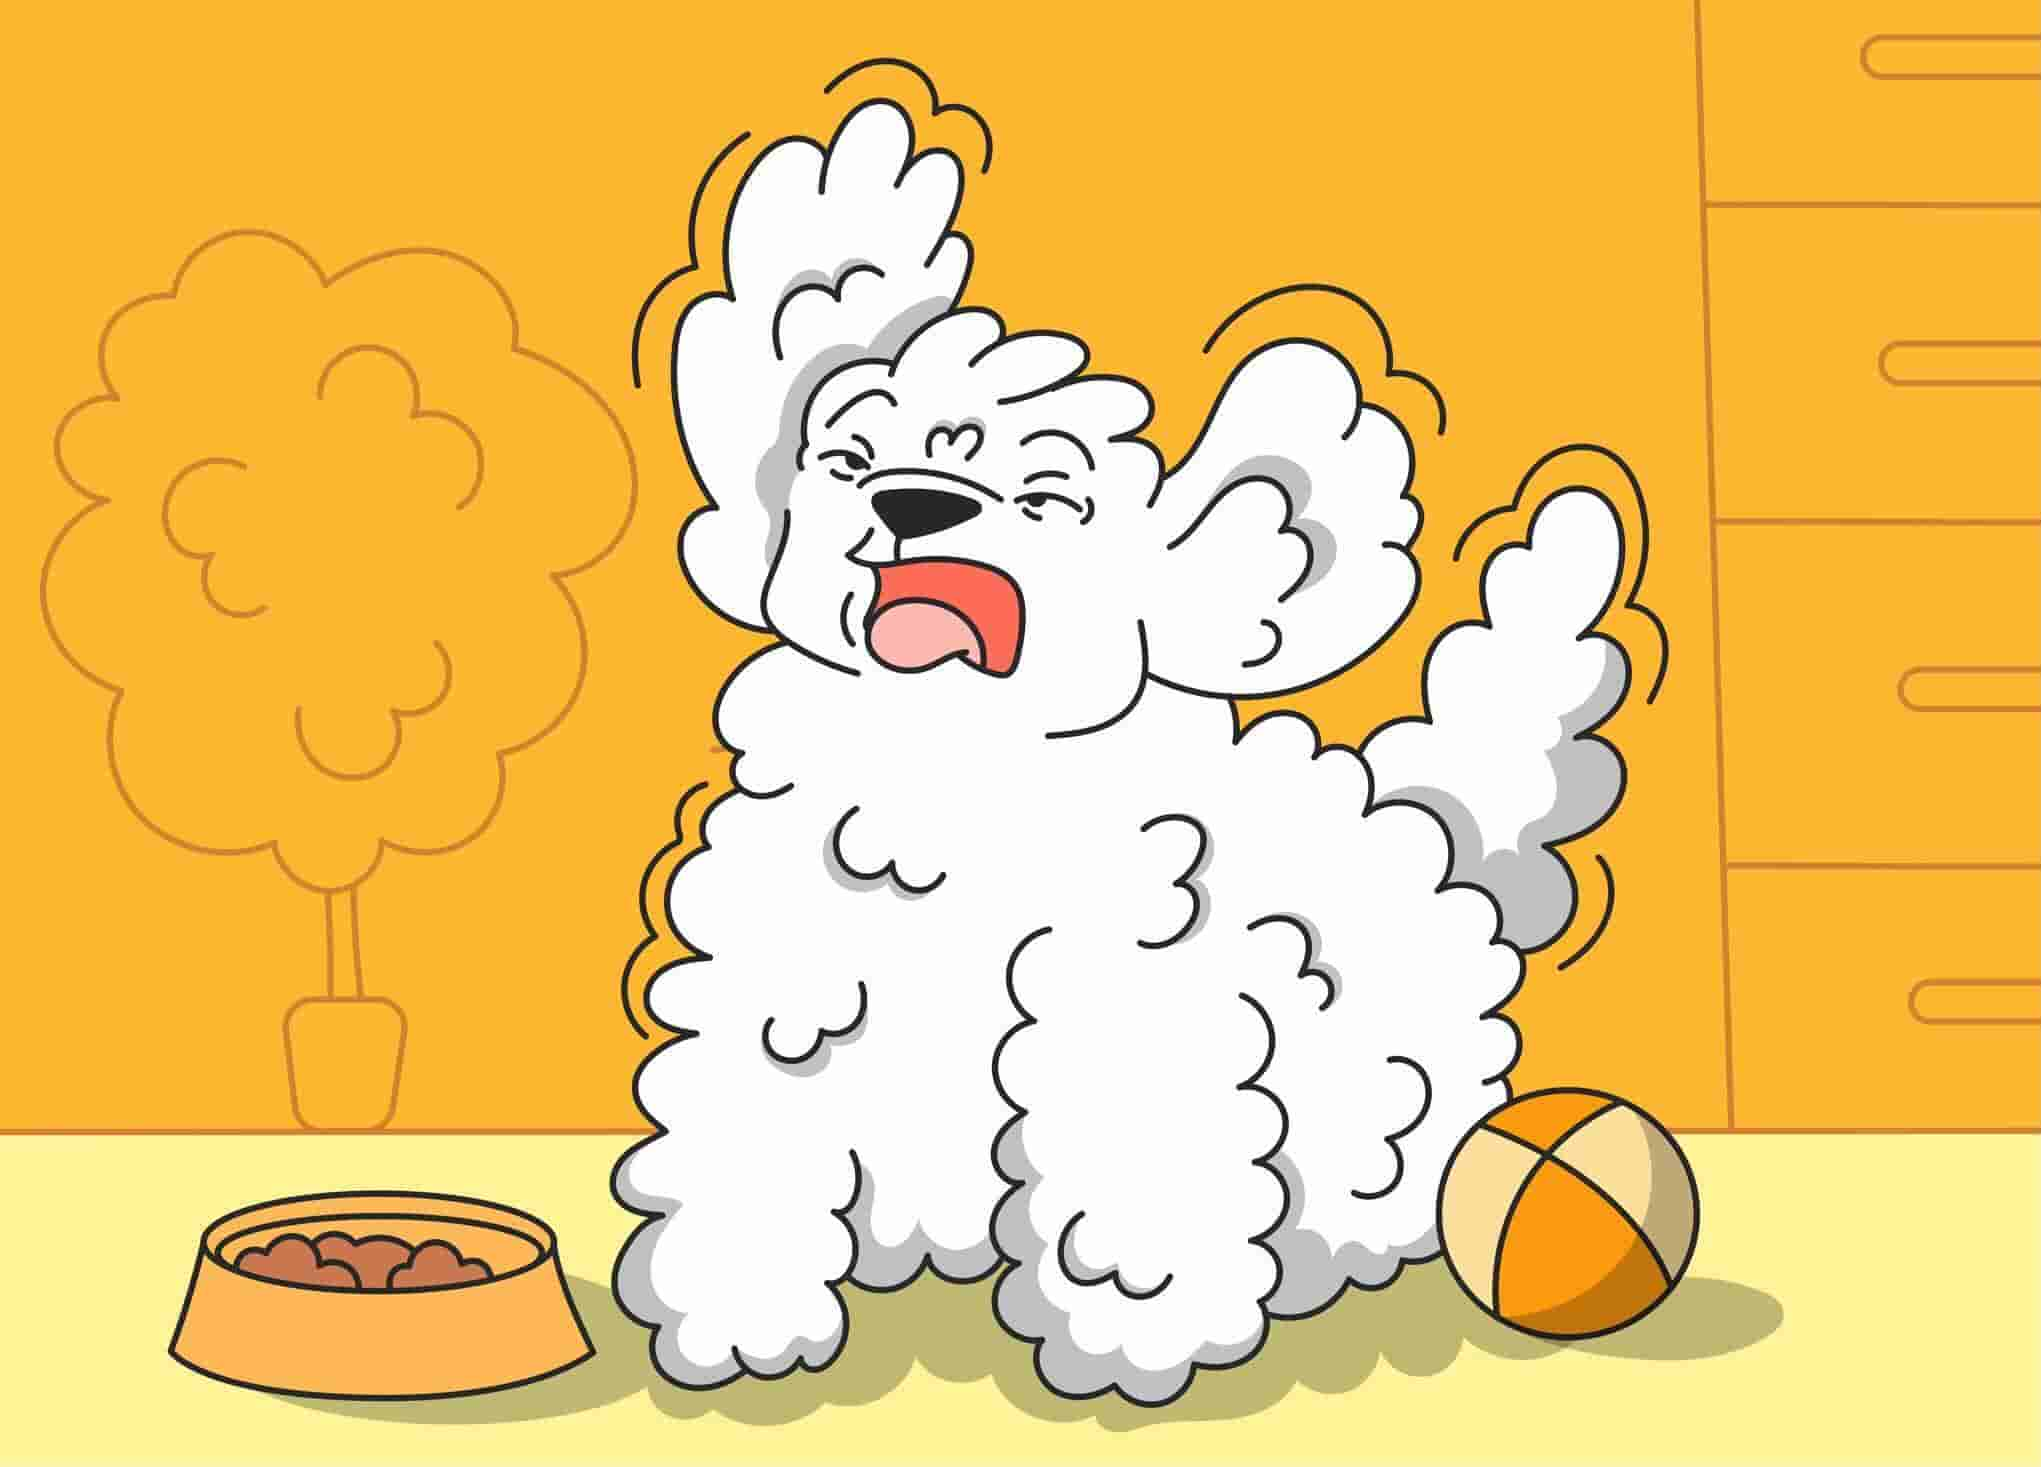 Hic! A Definitive Guide to Dog and Puppy Hiccups